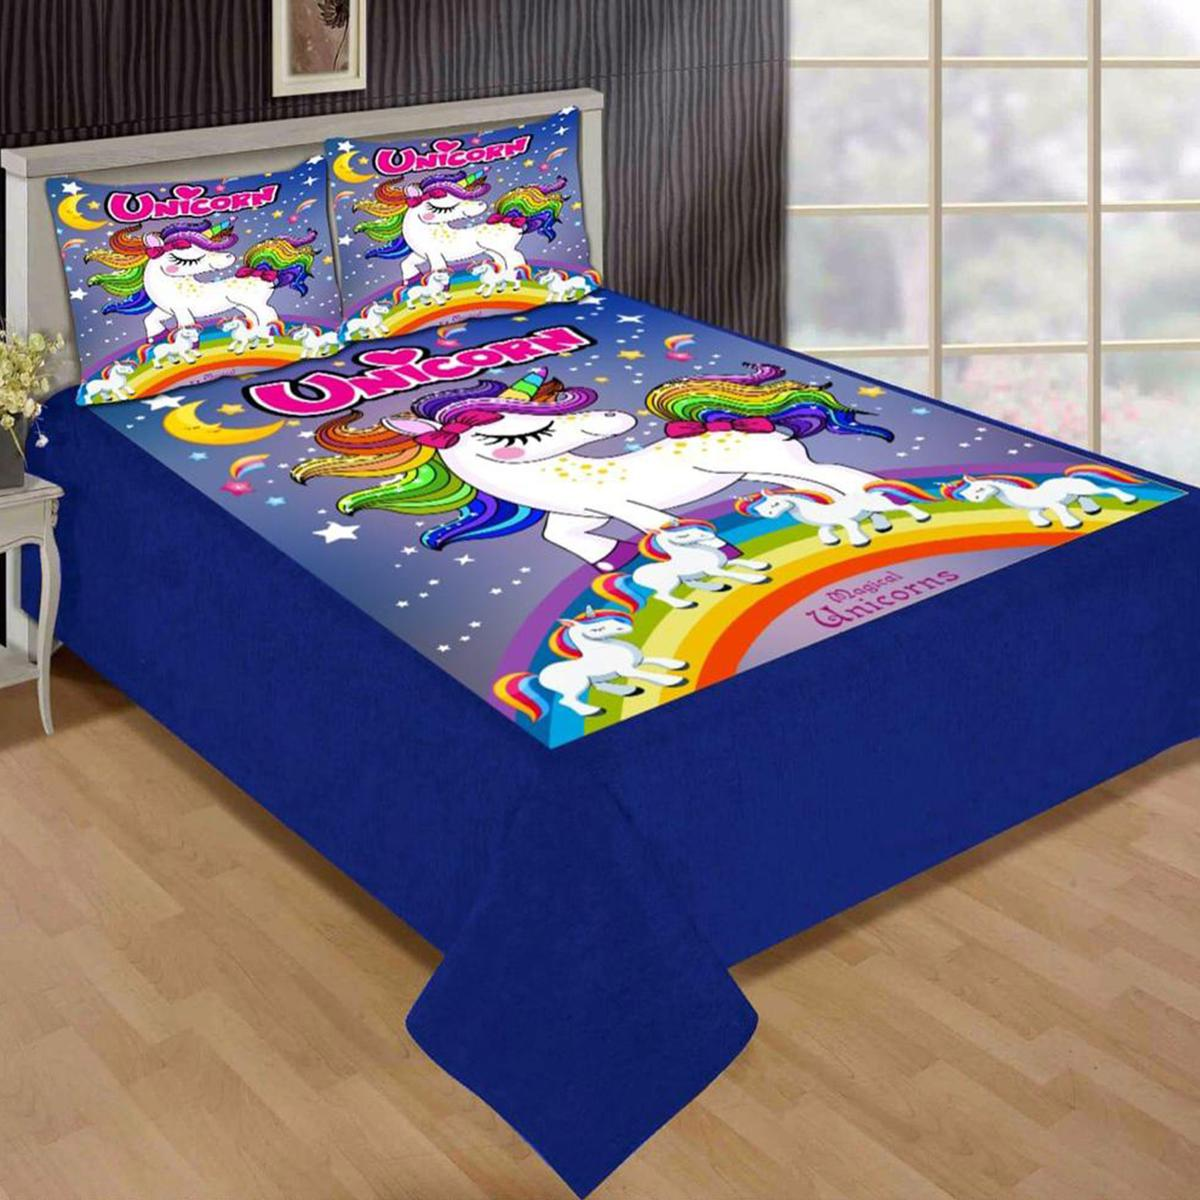 Adirav - Blue Colored Printed Double Velvet Bedsheet With 2 Pillow Cover